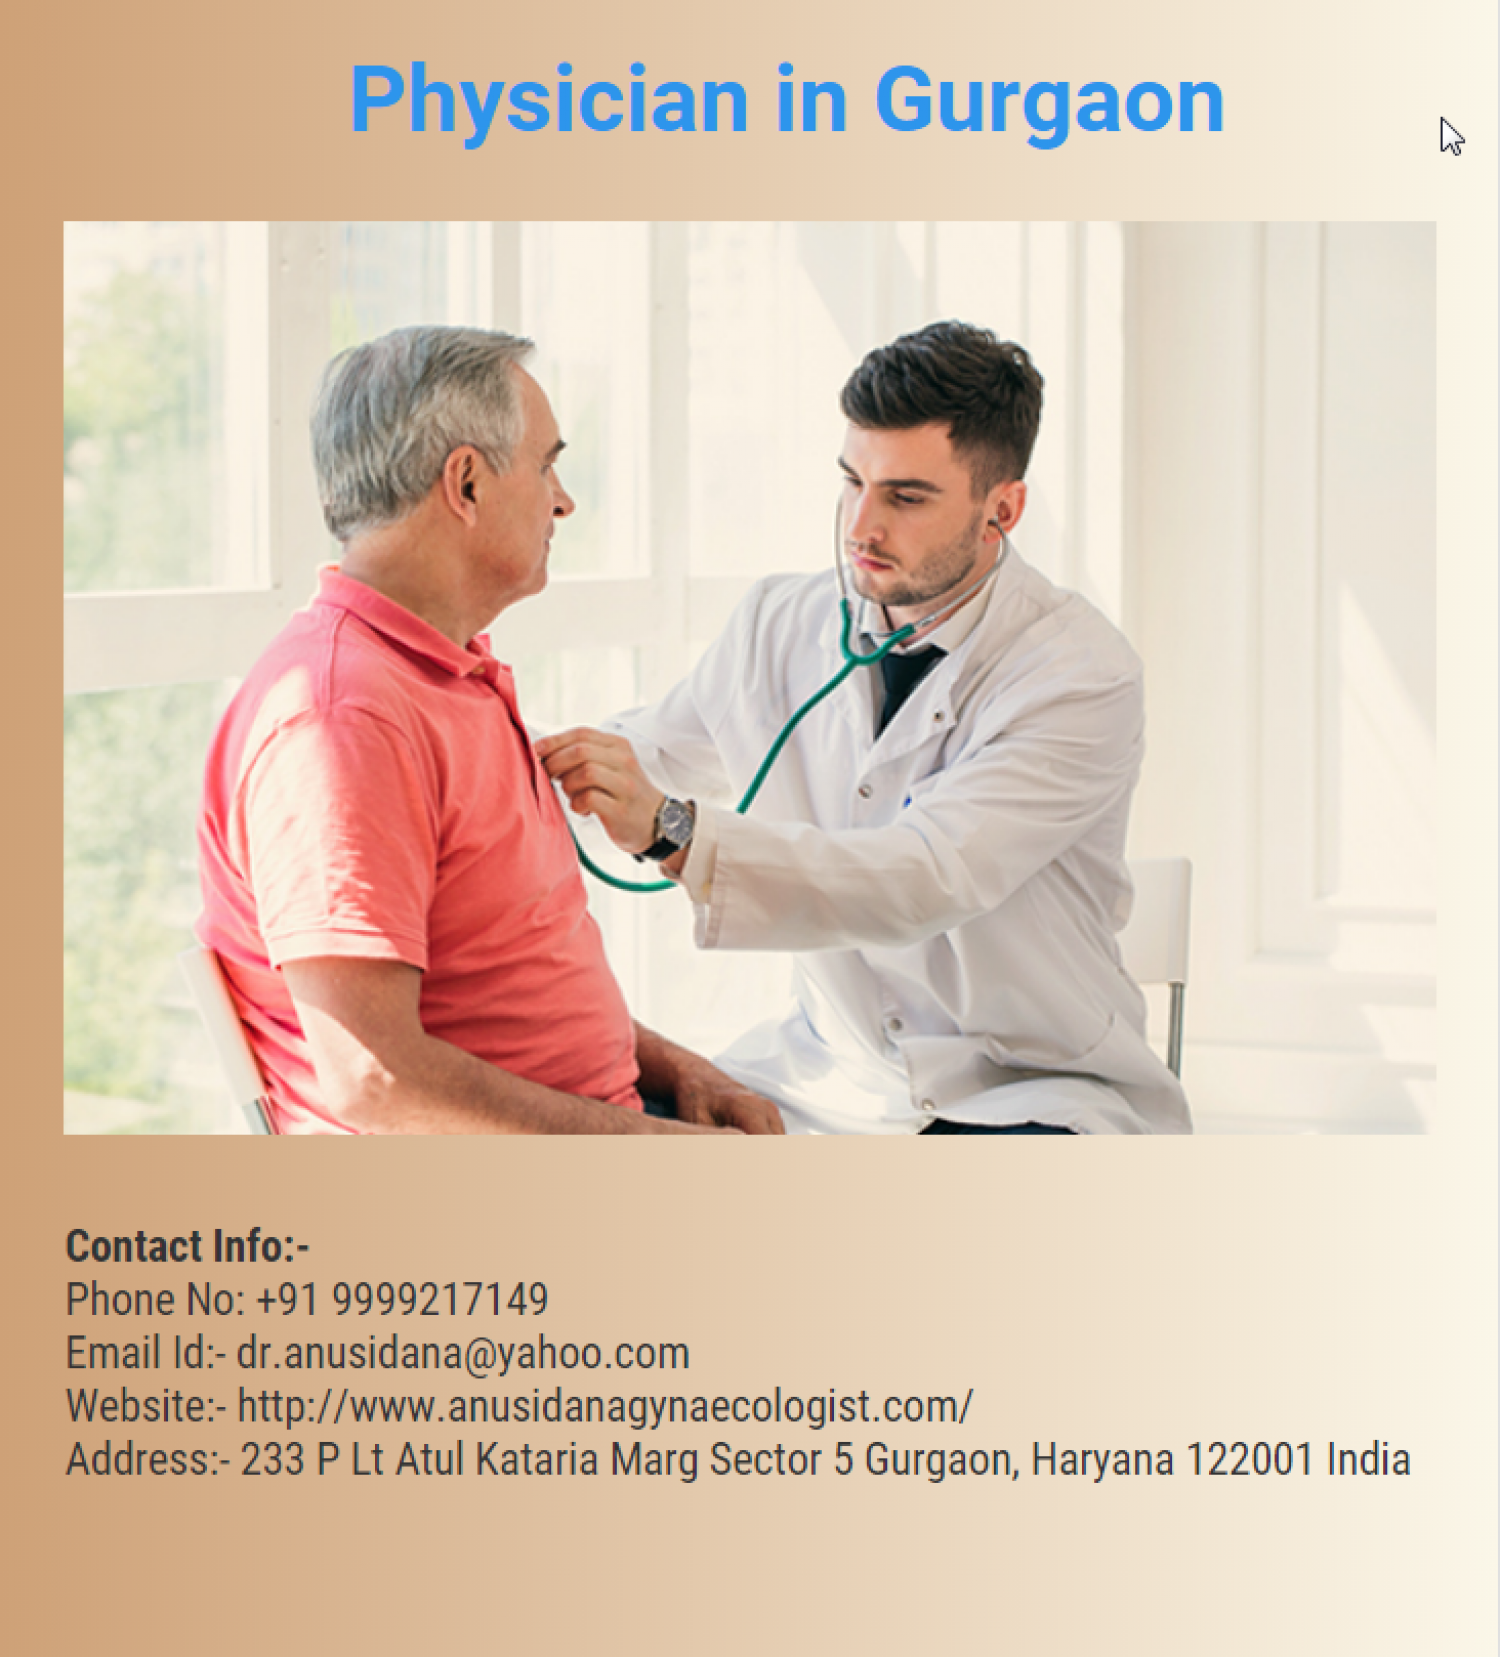 Physician in Gurgaon Infographic